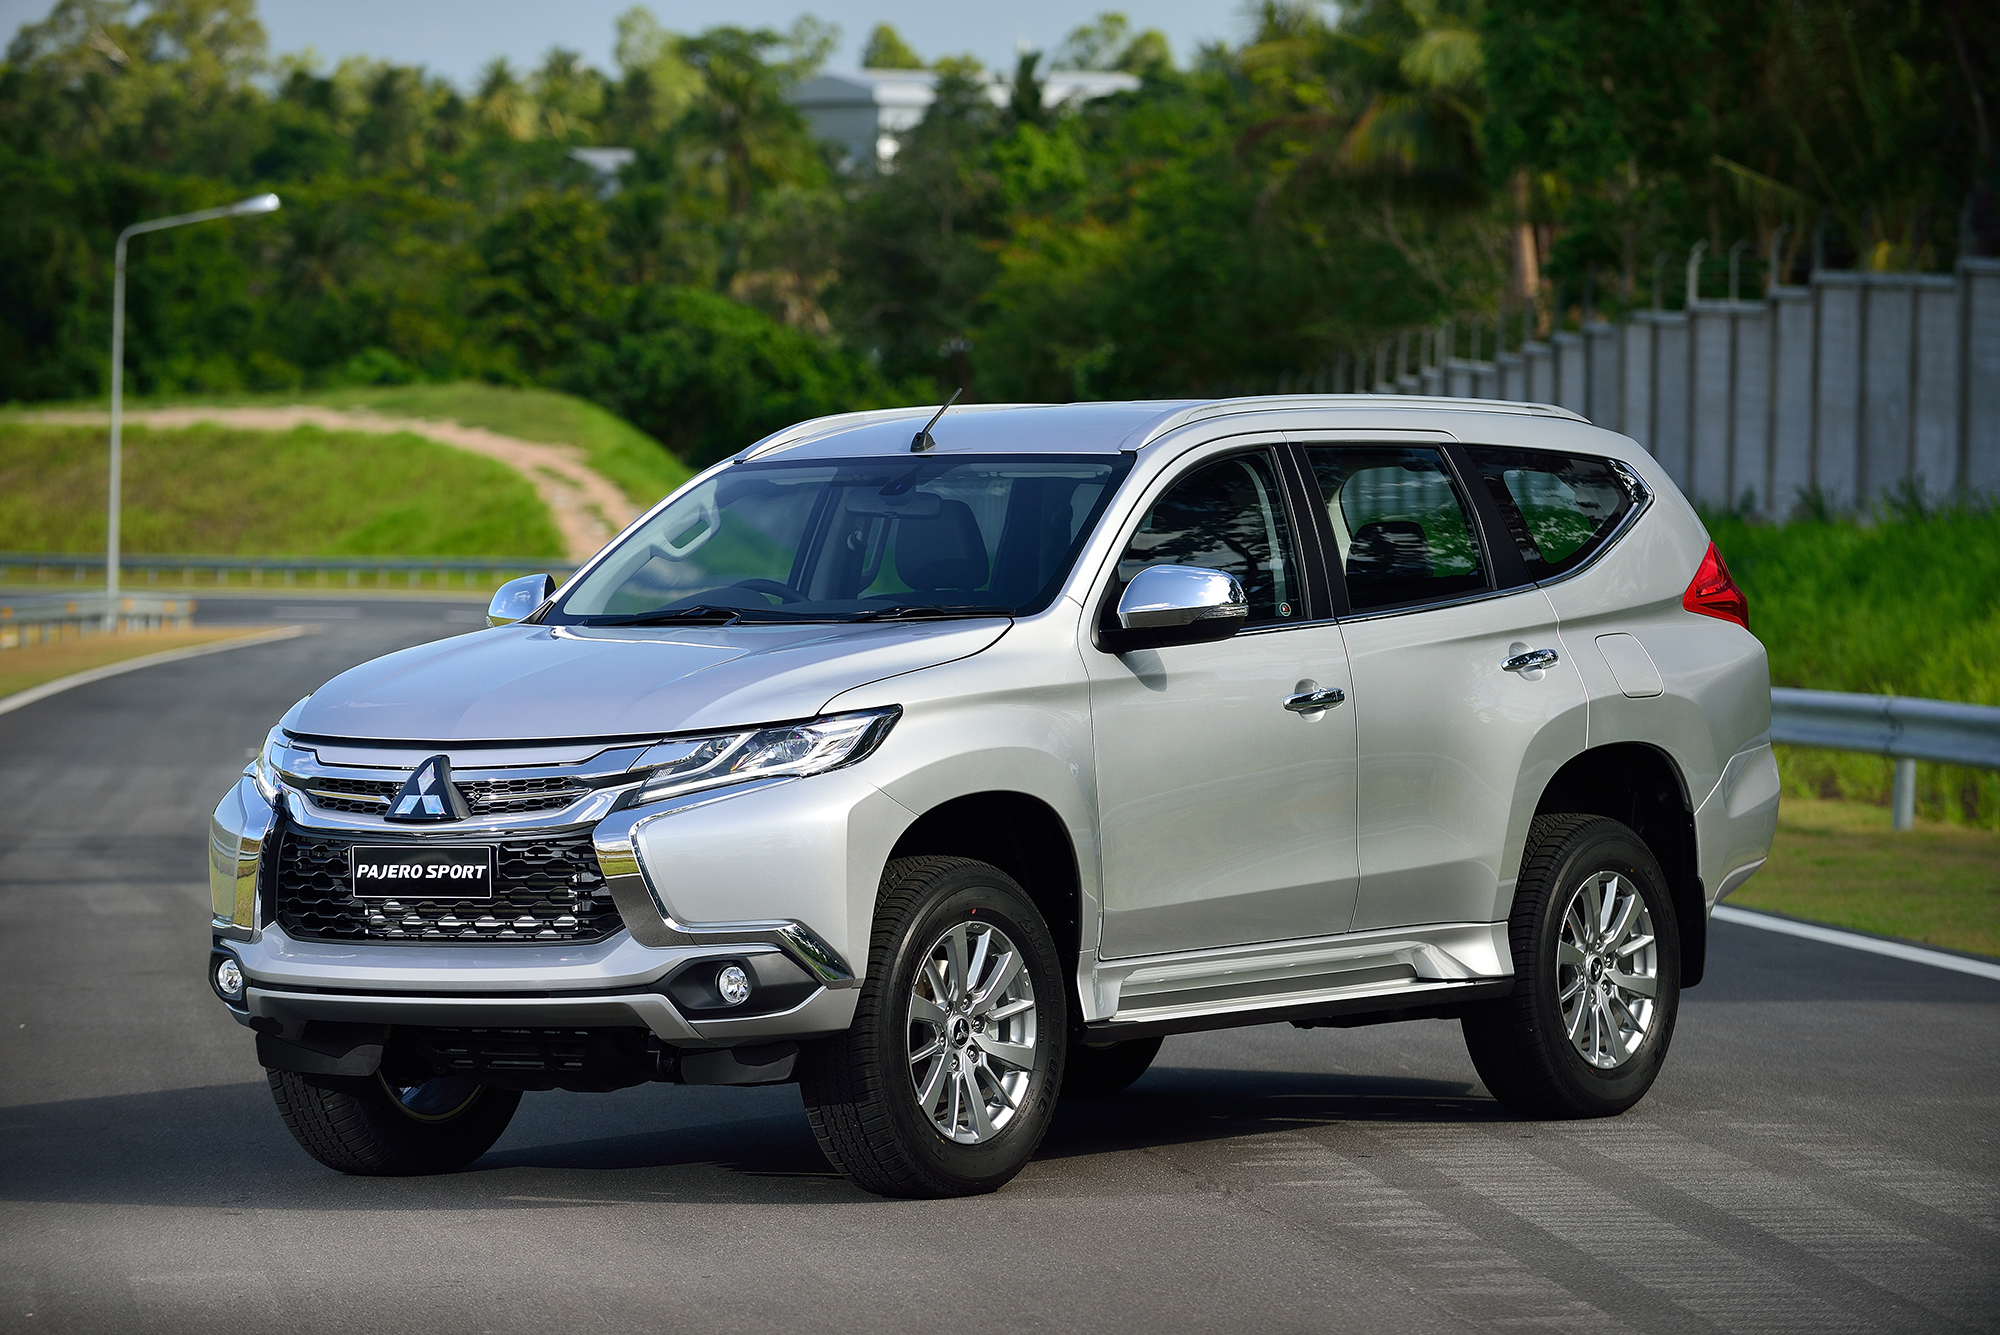 2016 Mitsubishi Pajero Sport New Triton Based Ladder